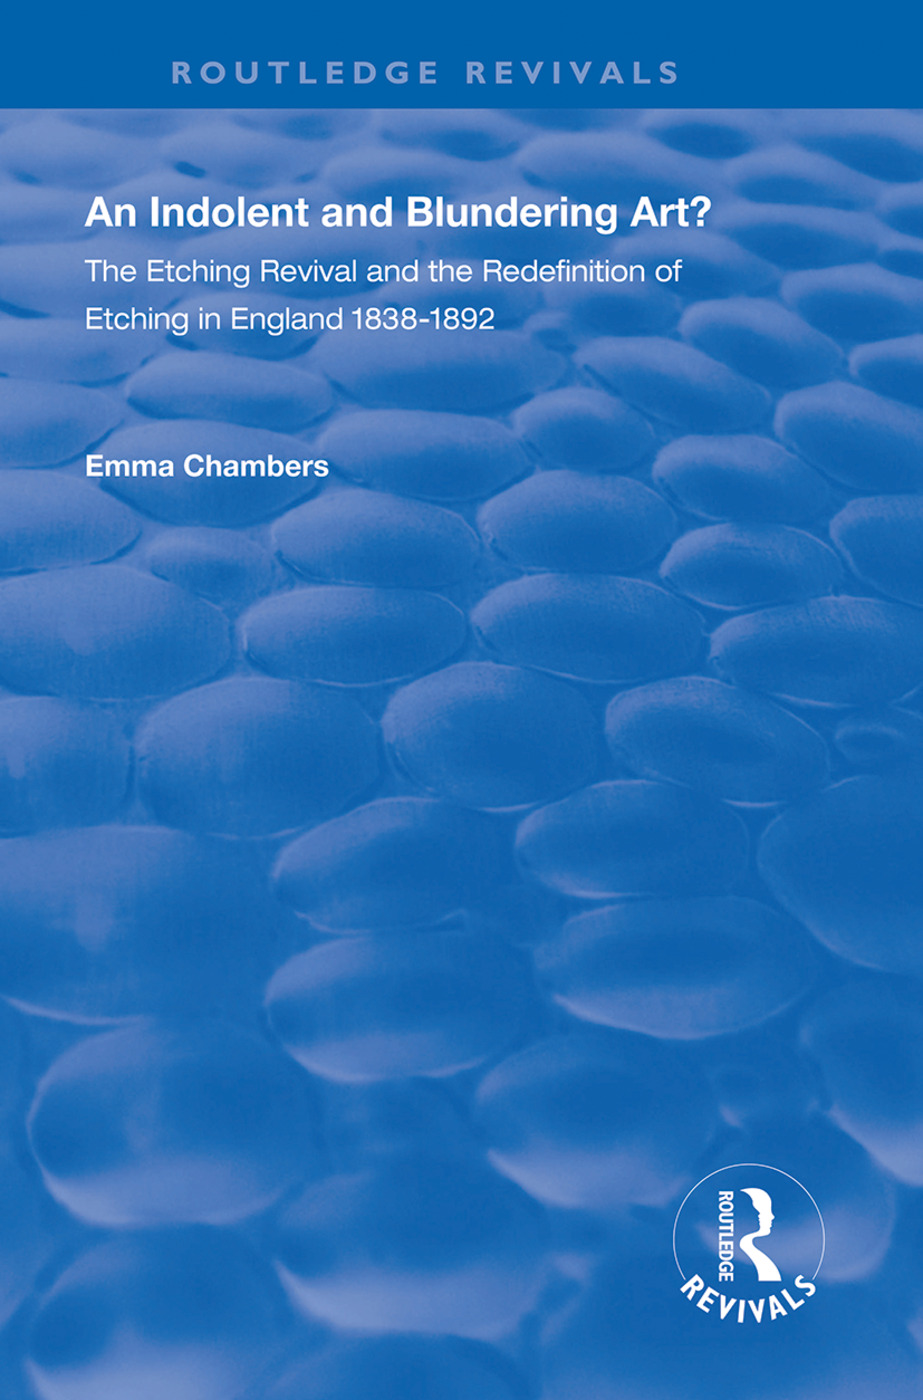 An Indolent and Blundering Art?: The Etching Revival and the Redefinition of Etching in England book cover